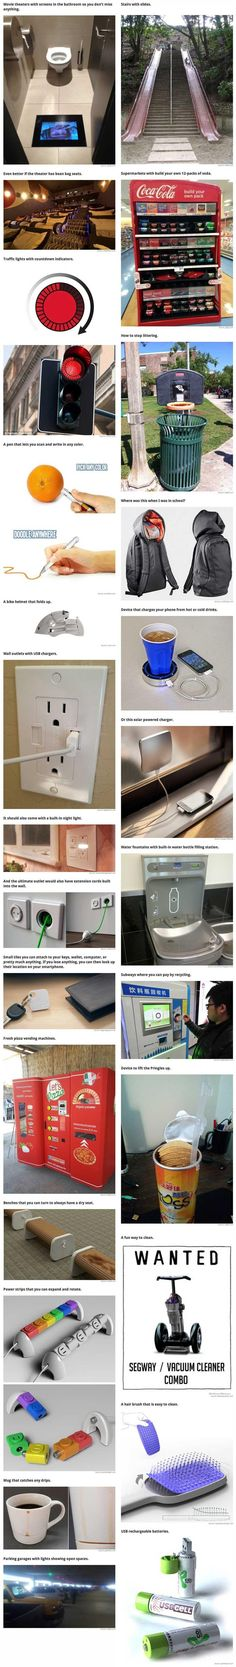 26 clever innovations that totally need to be everywhere already. Really cool inventions that are a necessity.